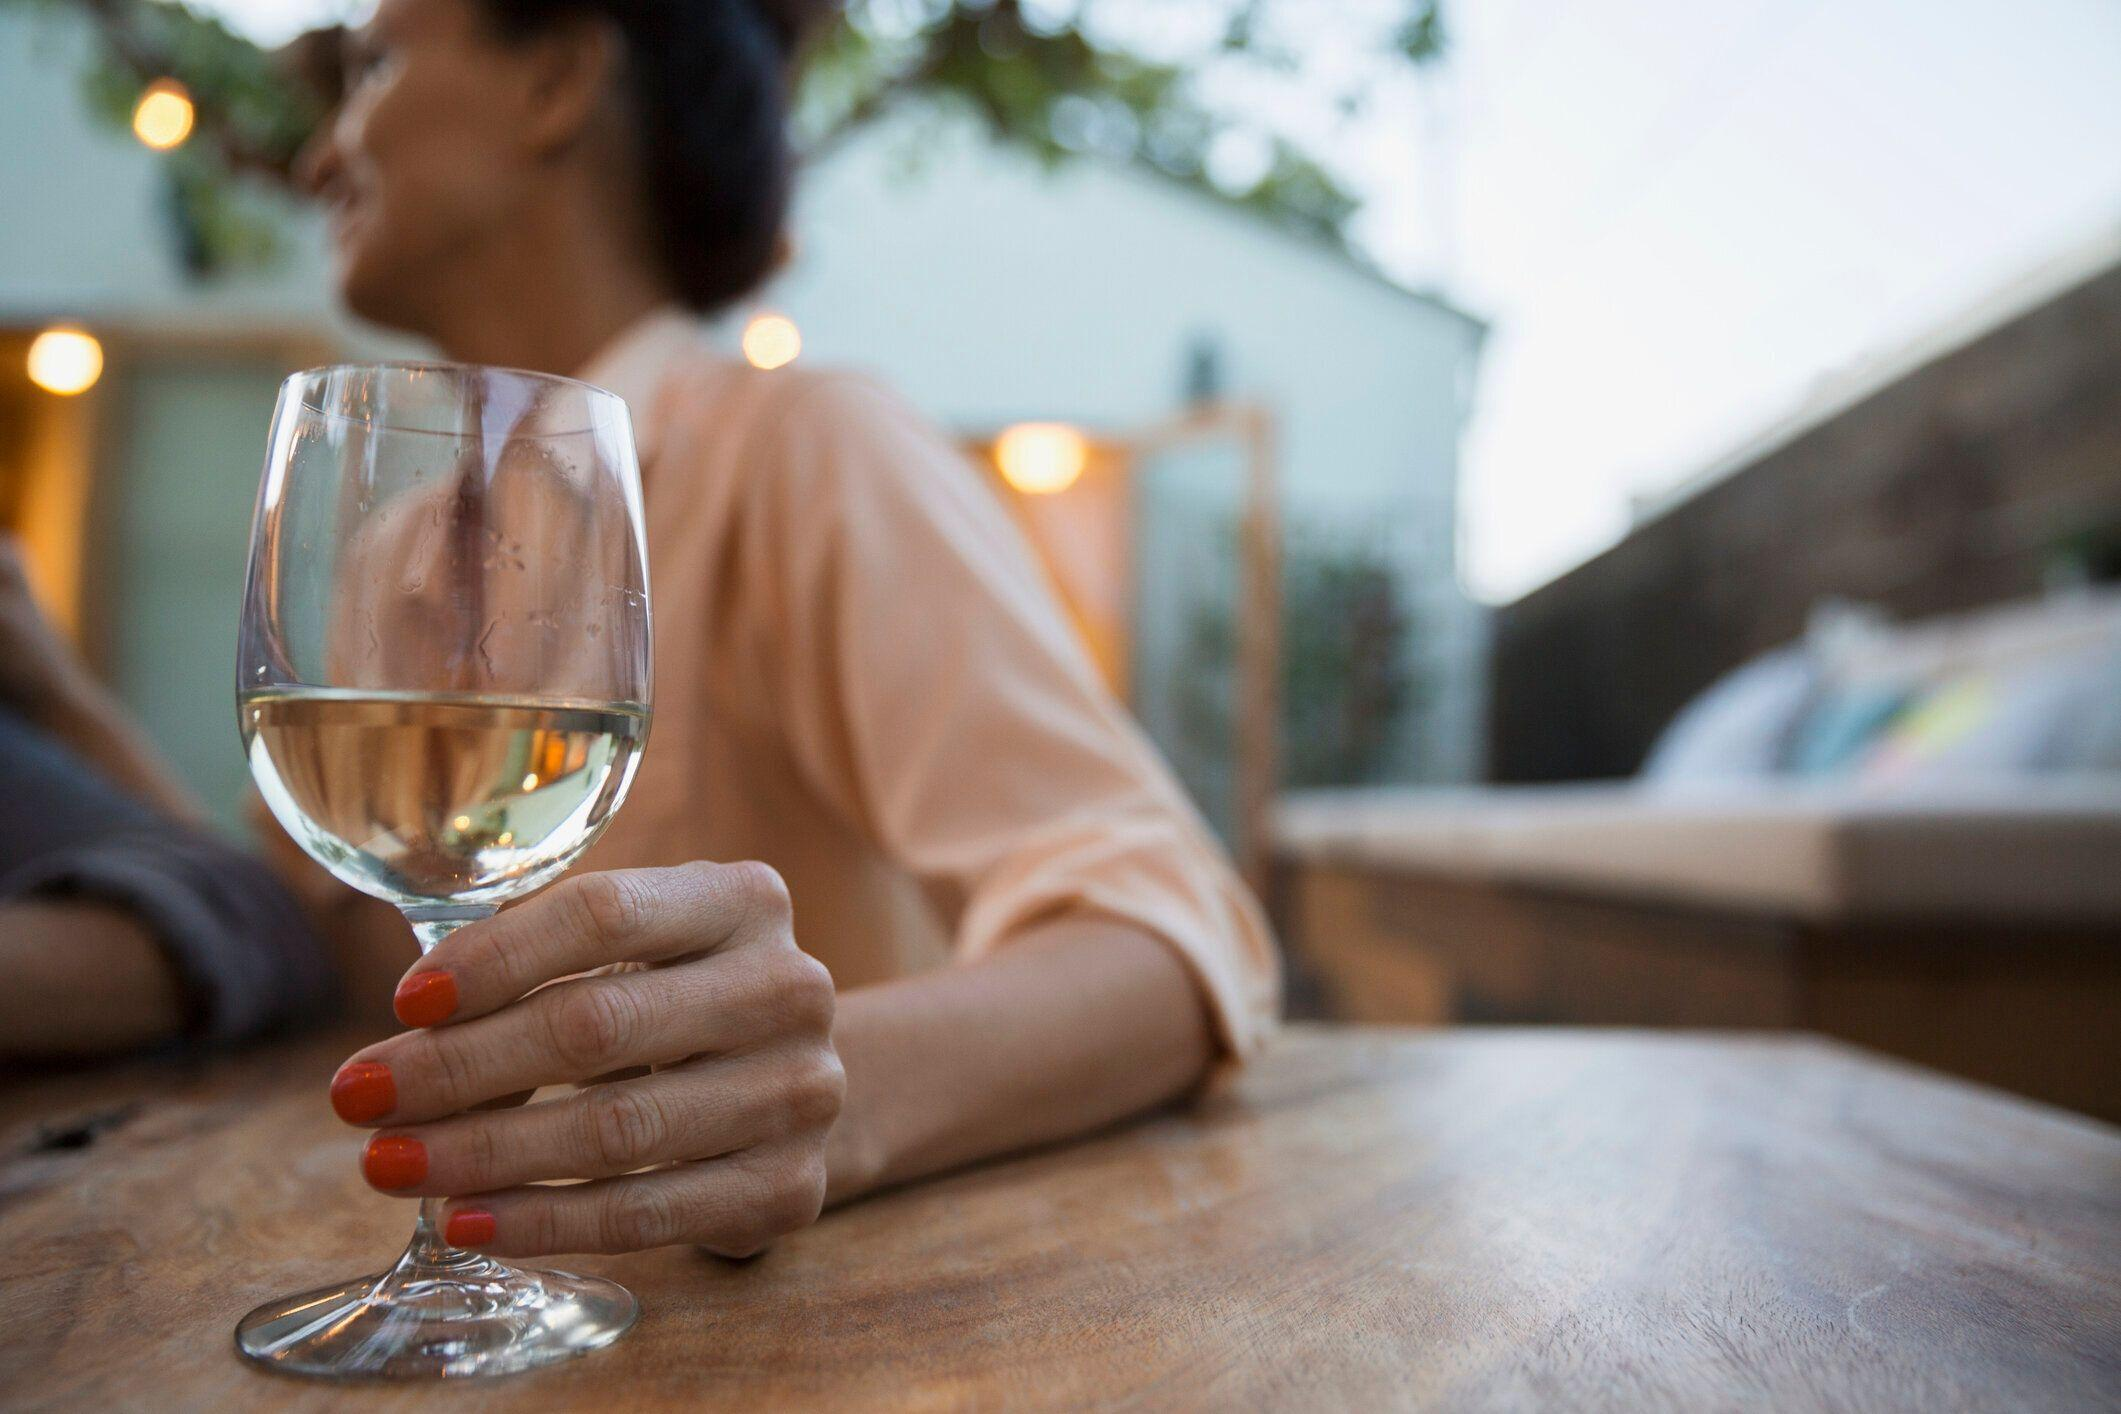 Whether you drink red or white wine says a lot about your personality, according to survey